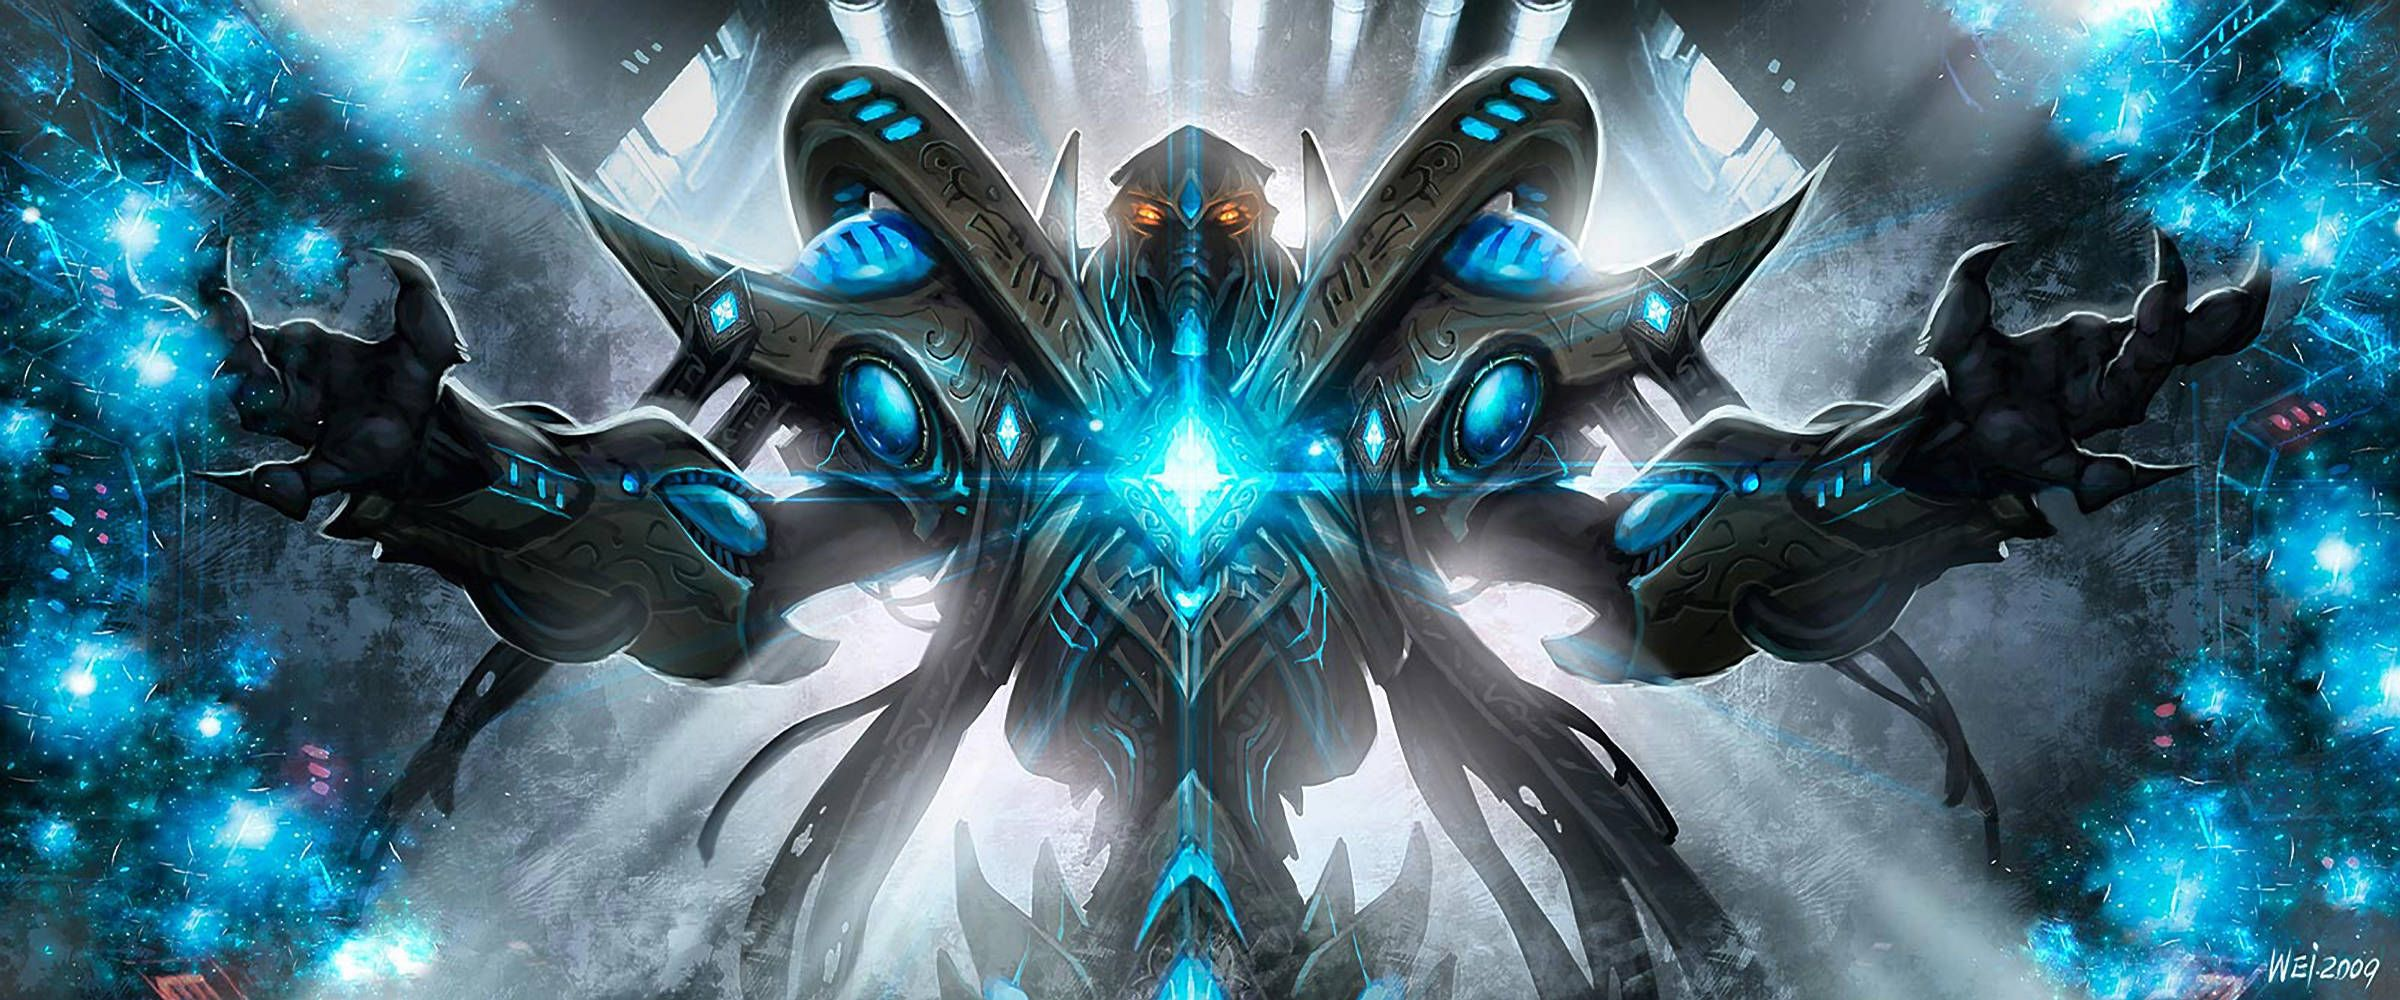 Protoss Wallpaper HD Wallpapers Pinterest Best Hd wallpaper